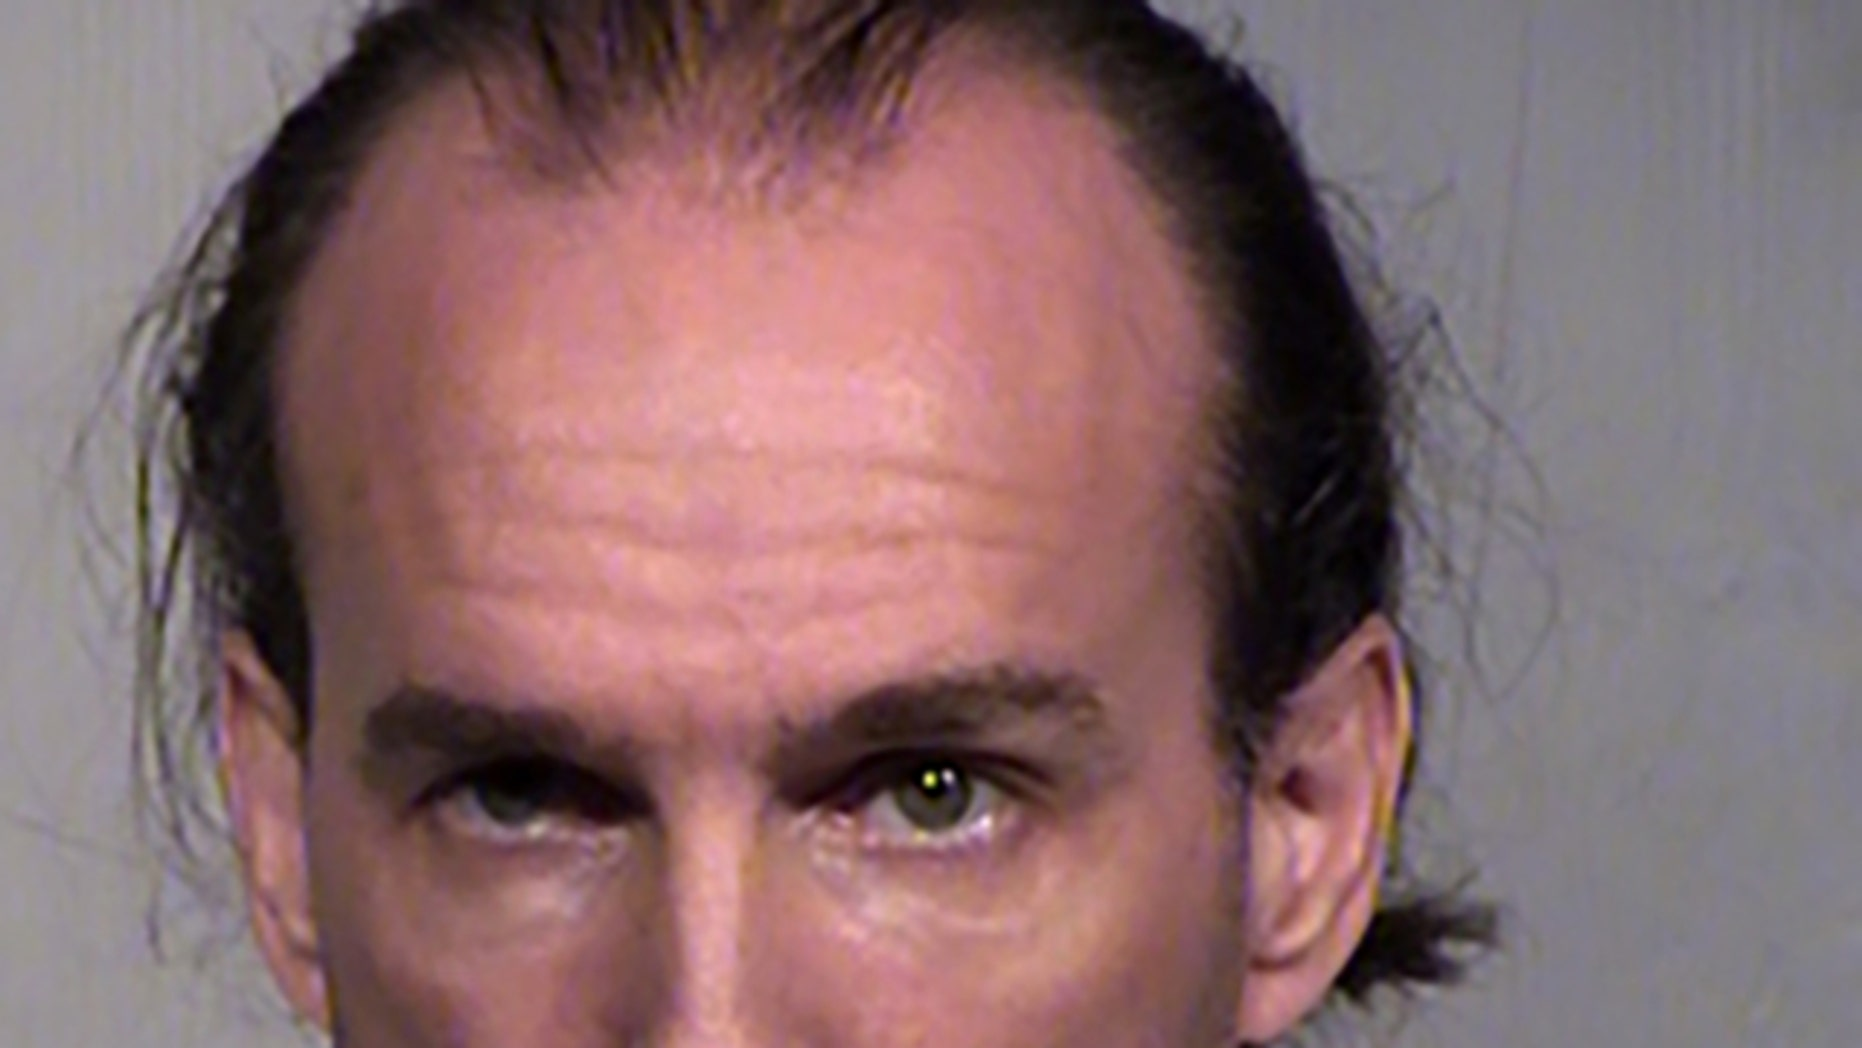 Jonathan Conaway allegedly killed his wife and told police she became a burden after she suffered a stroke.